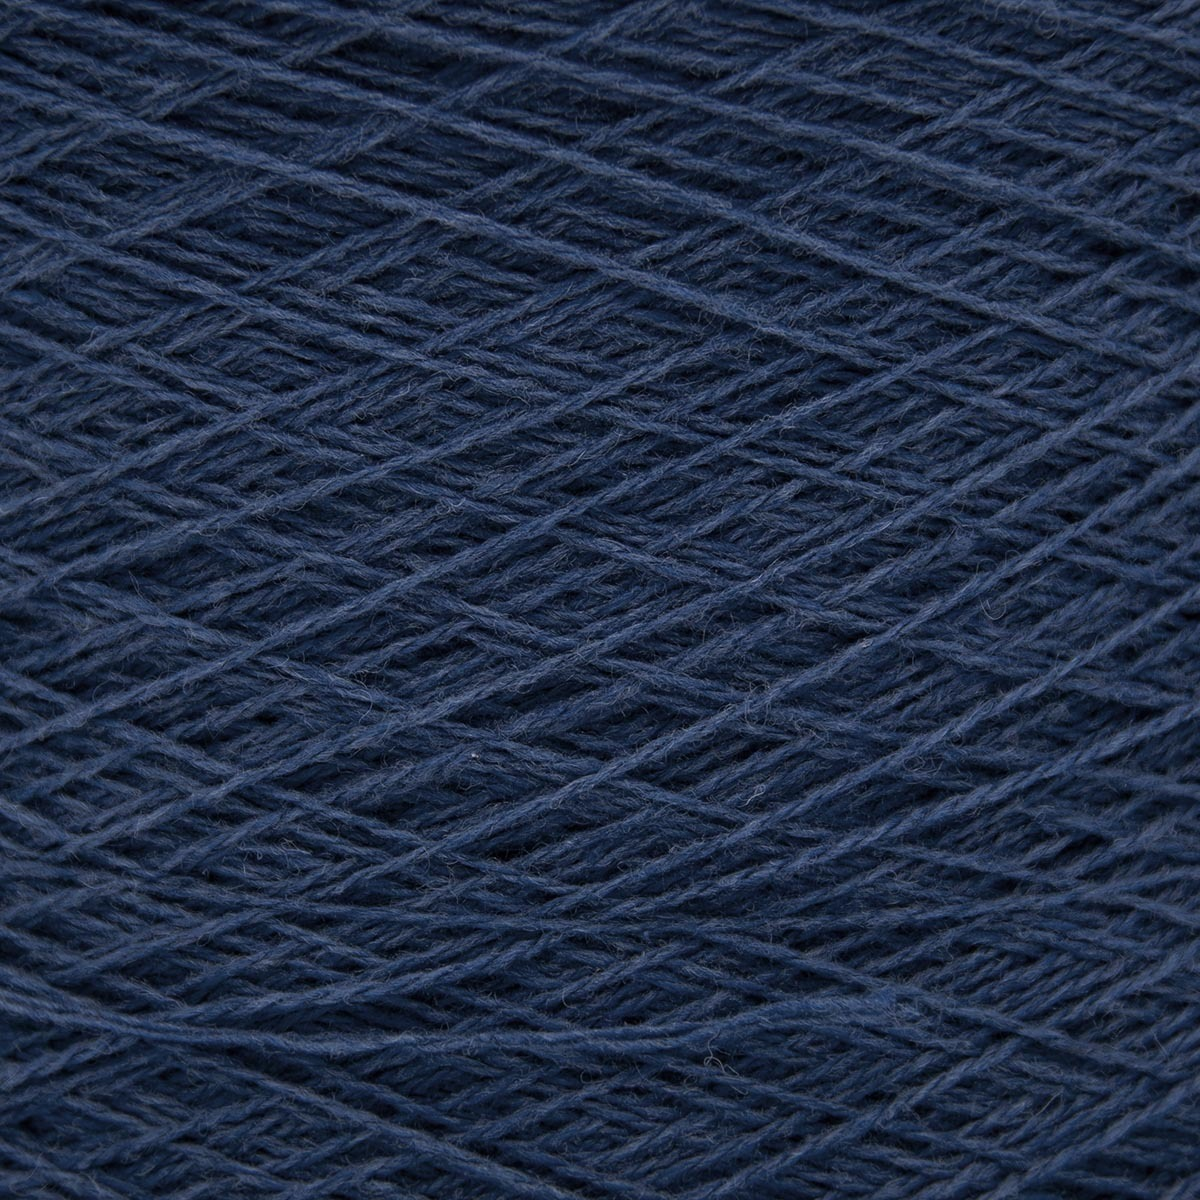 Knoll Yarns Coast - 075